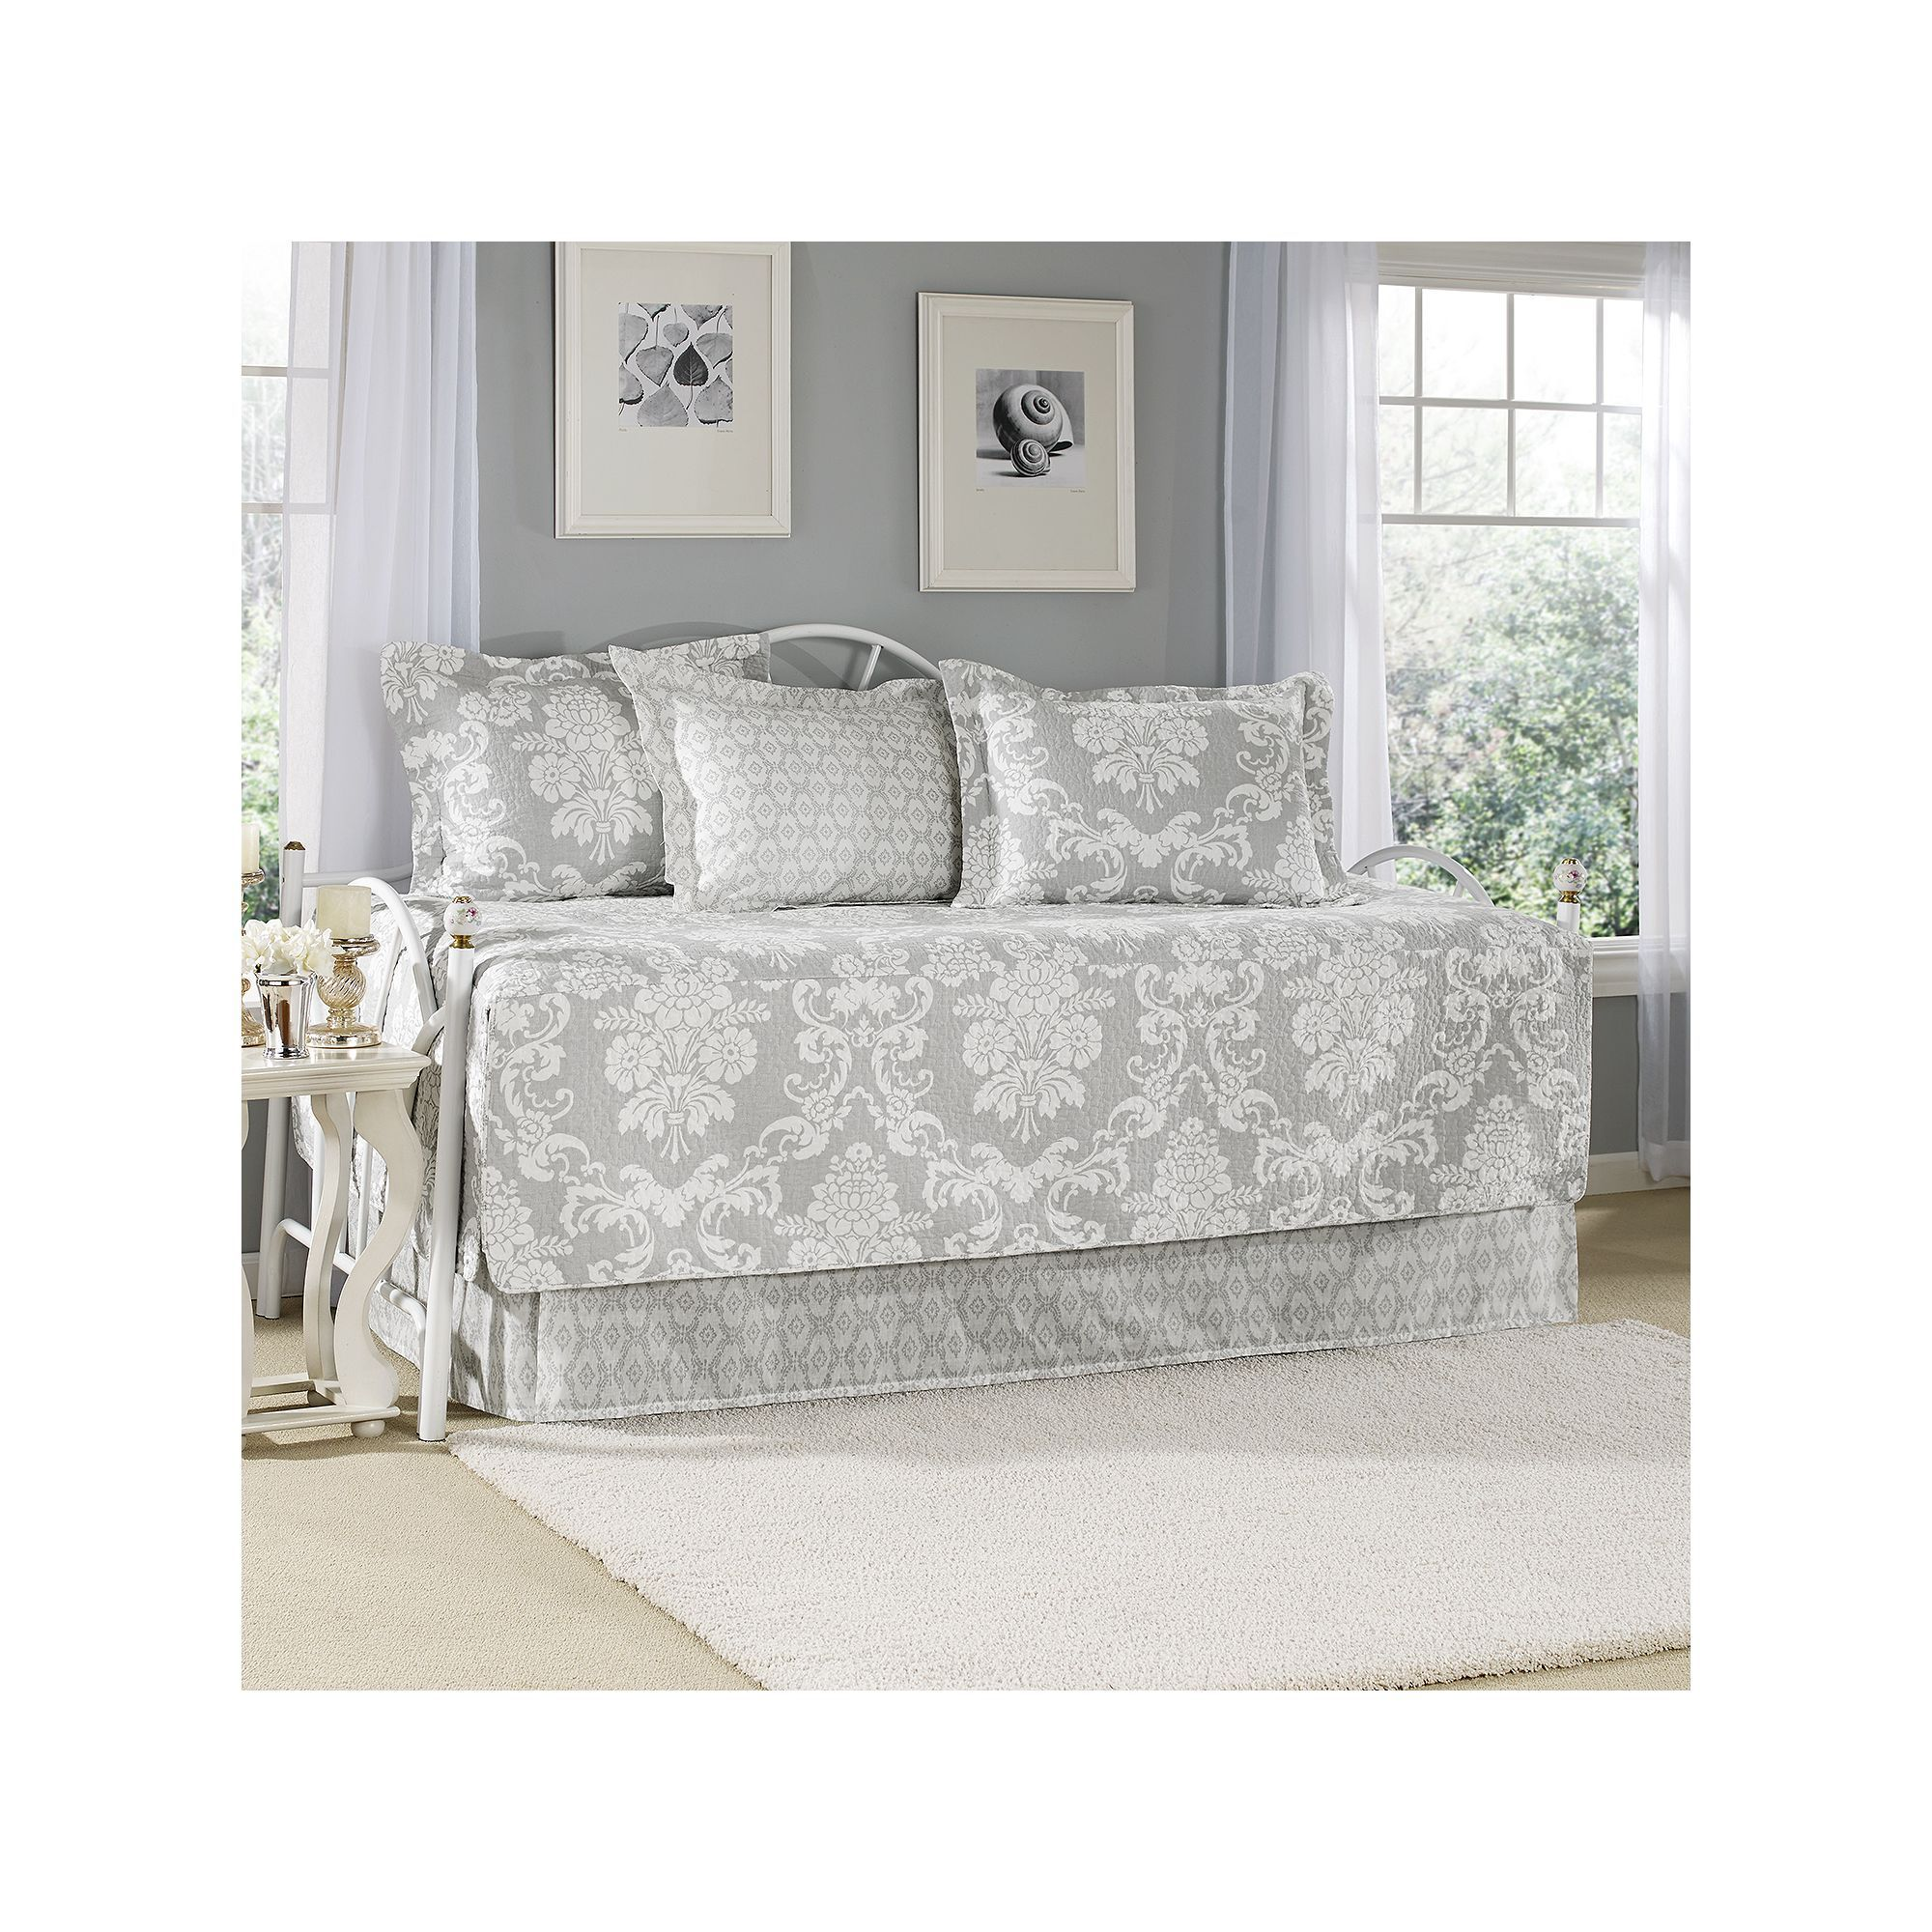 - Laura Ashley Lifestyles Venetia 5-pc. Daybed Quilt Set Daybed